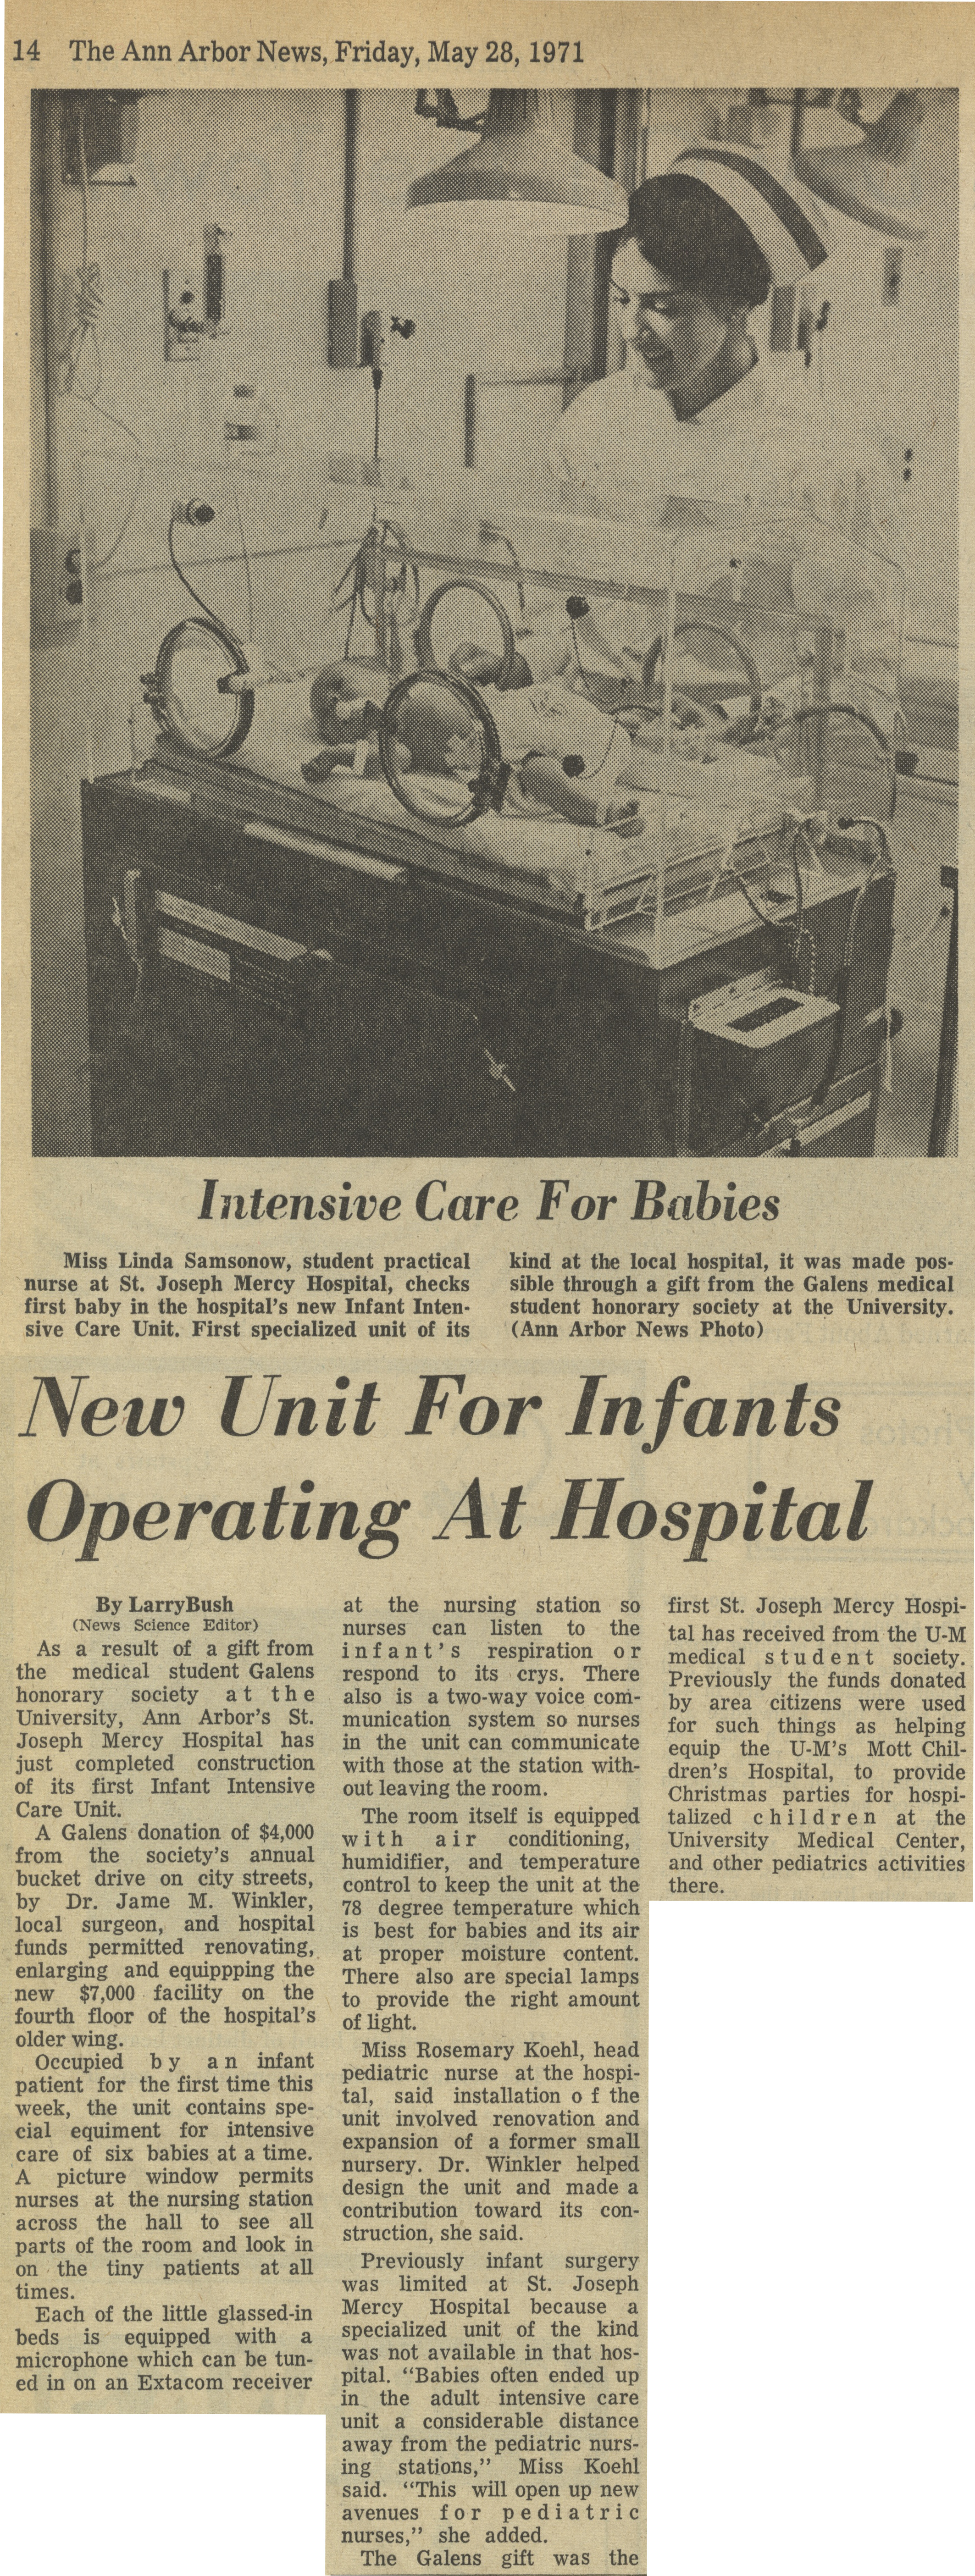 New Unit For Infants Operating At Hospital image